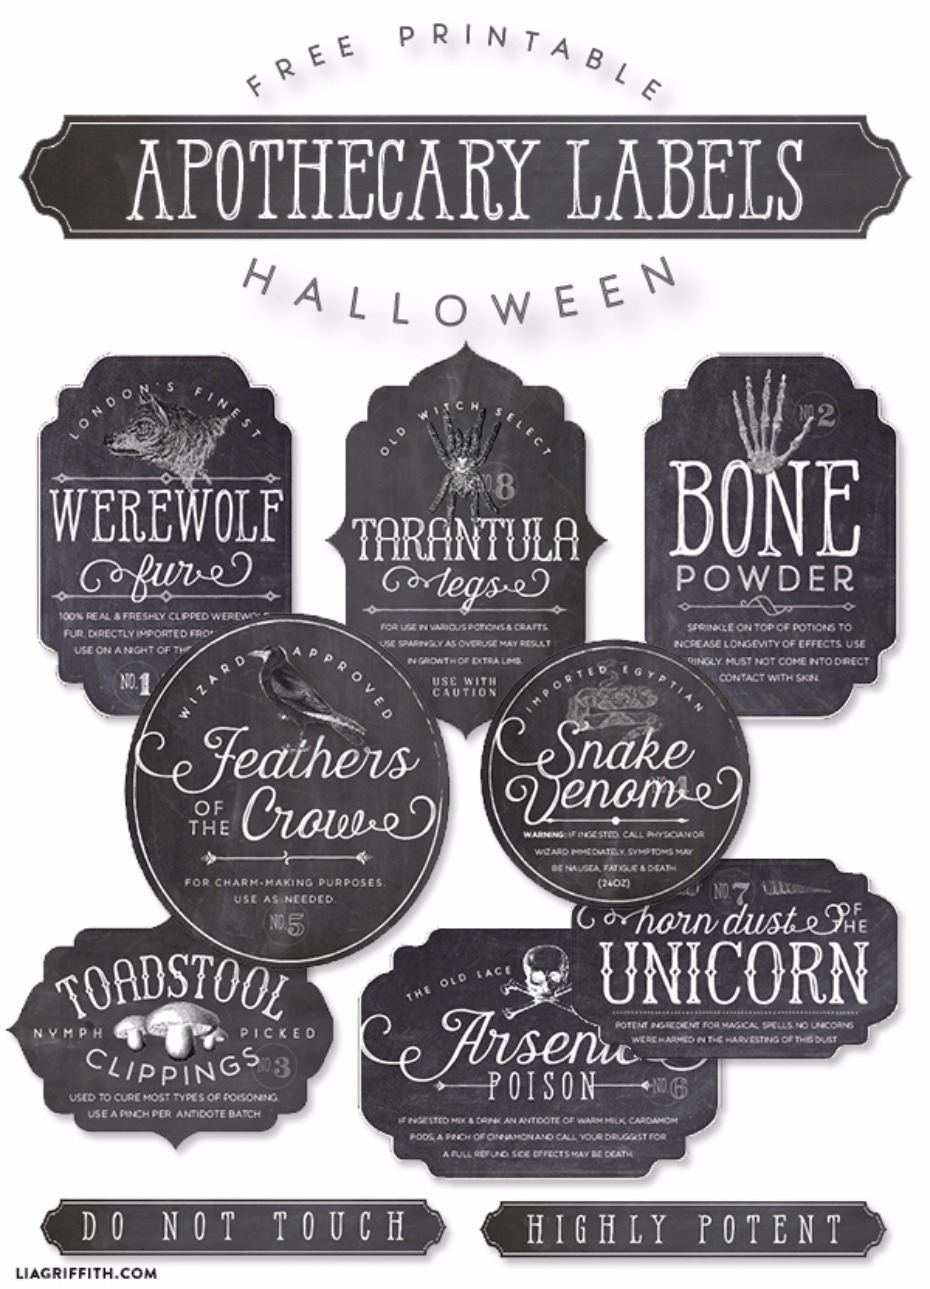 Apothecary printable labels